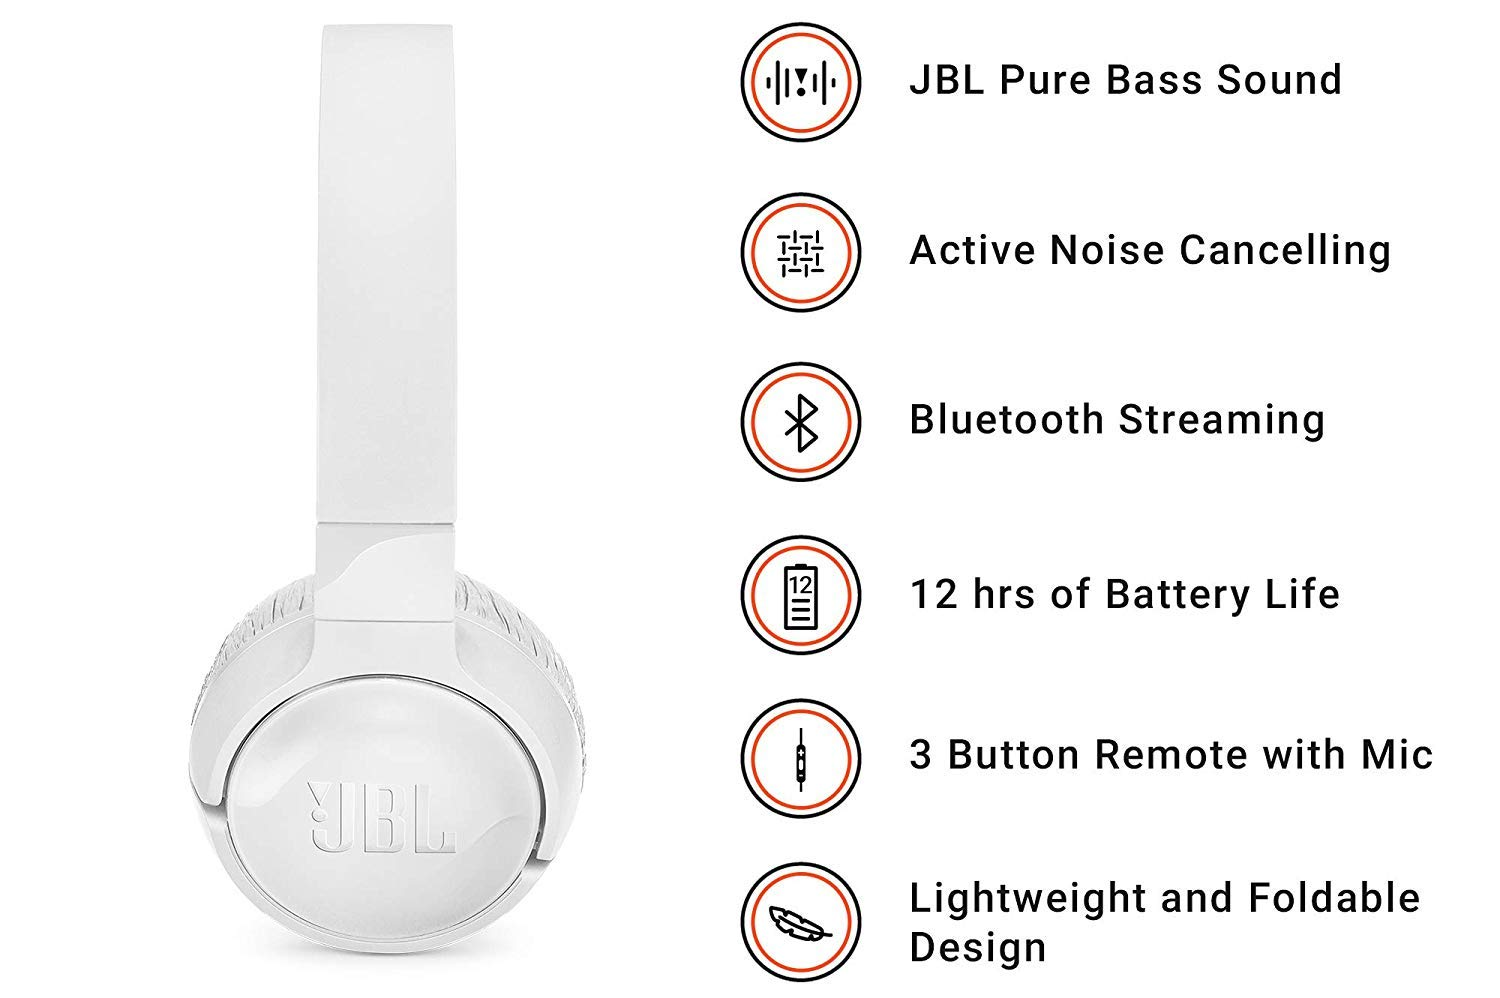 JBL Tune 600 BTNC On-Ear Wireless Bluetooth Noise Canceling Headphones